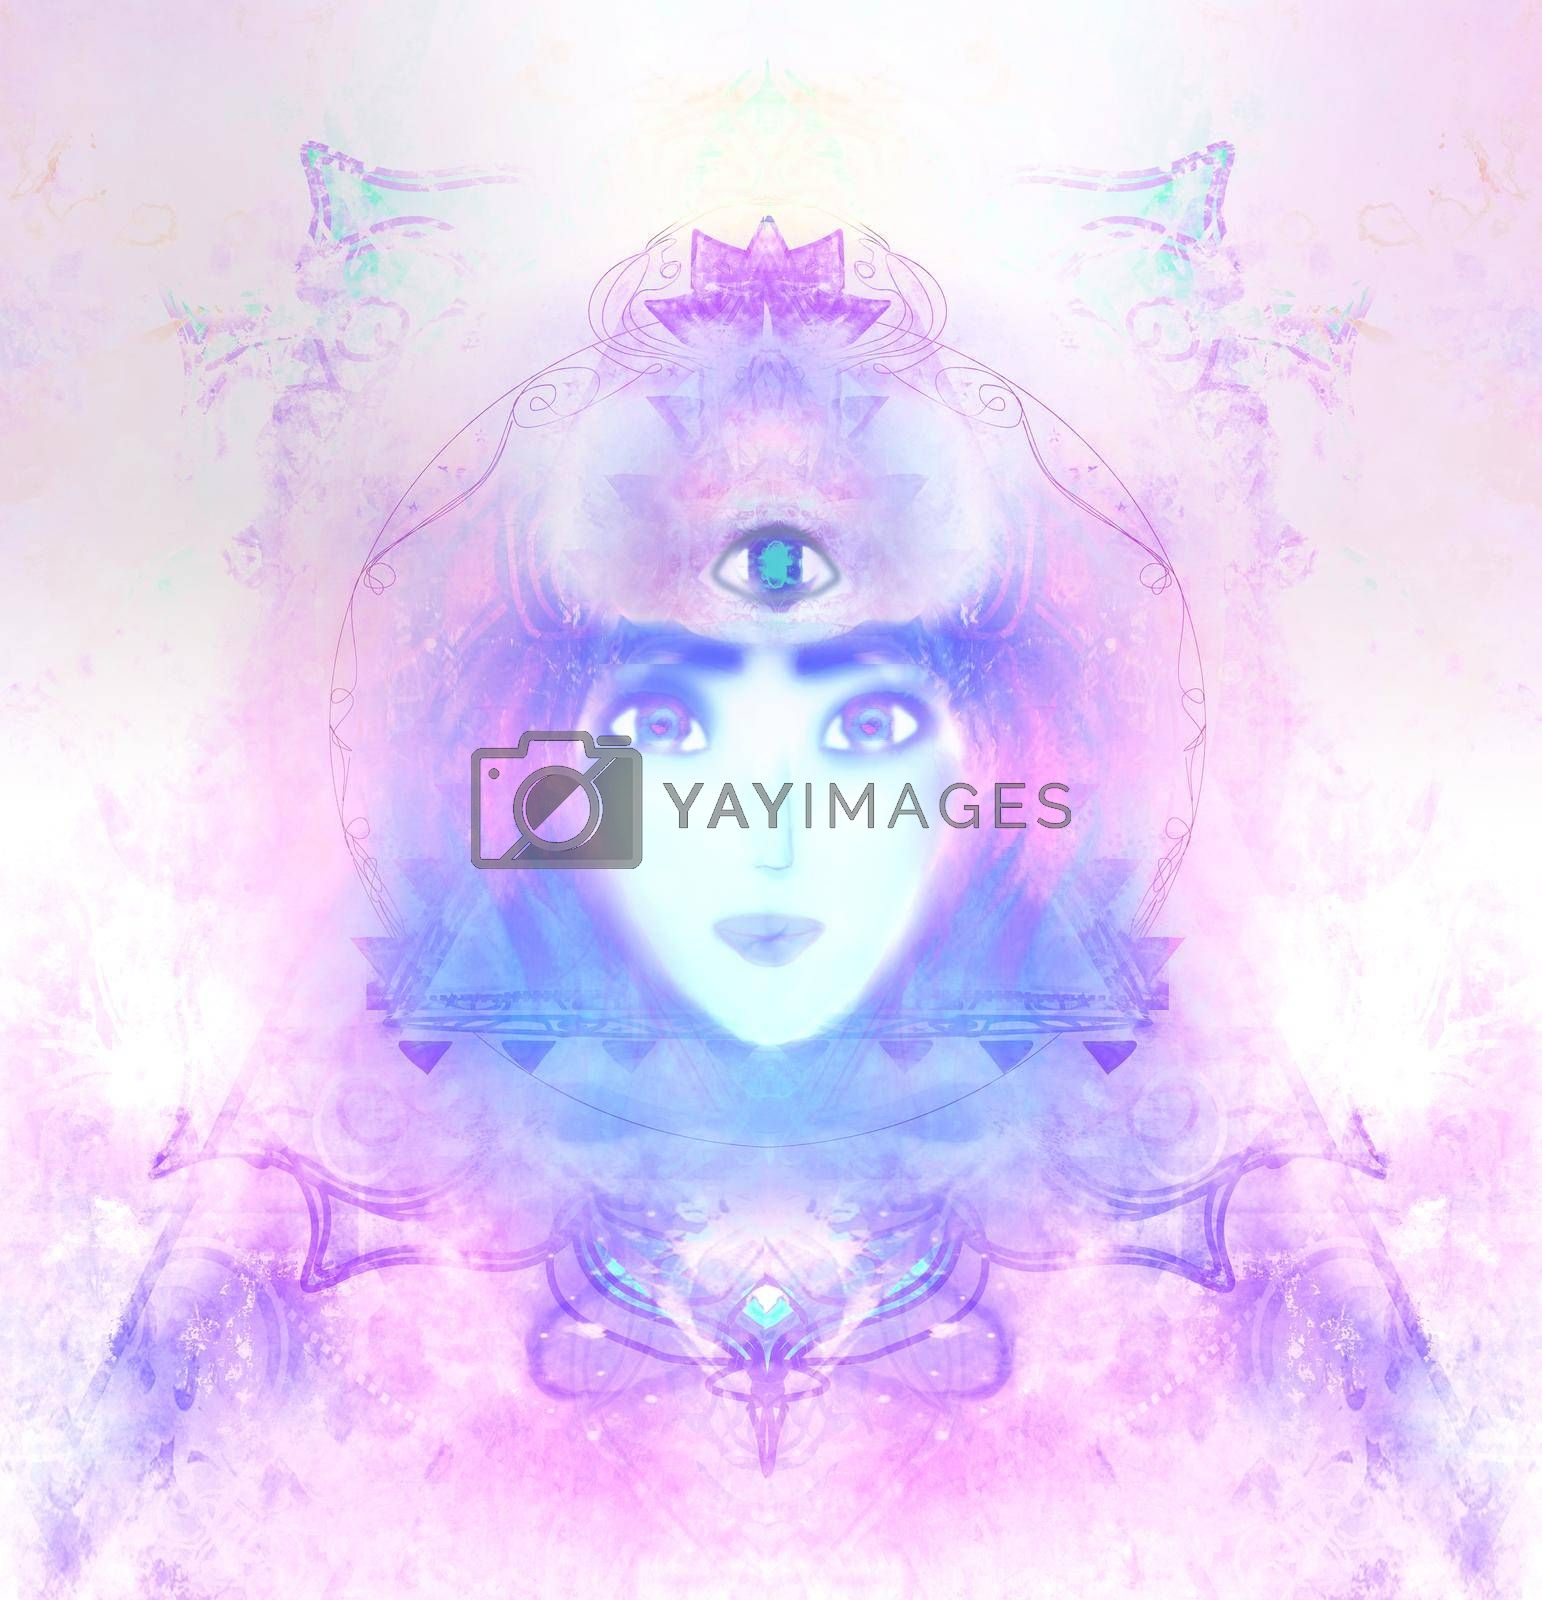 Royalty free image of Woman with third eye, psychic supernatural senses by JackyBrown